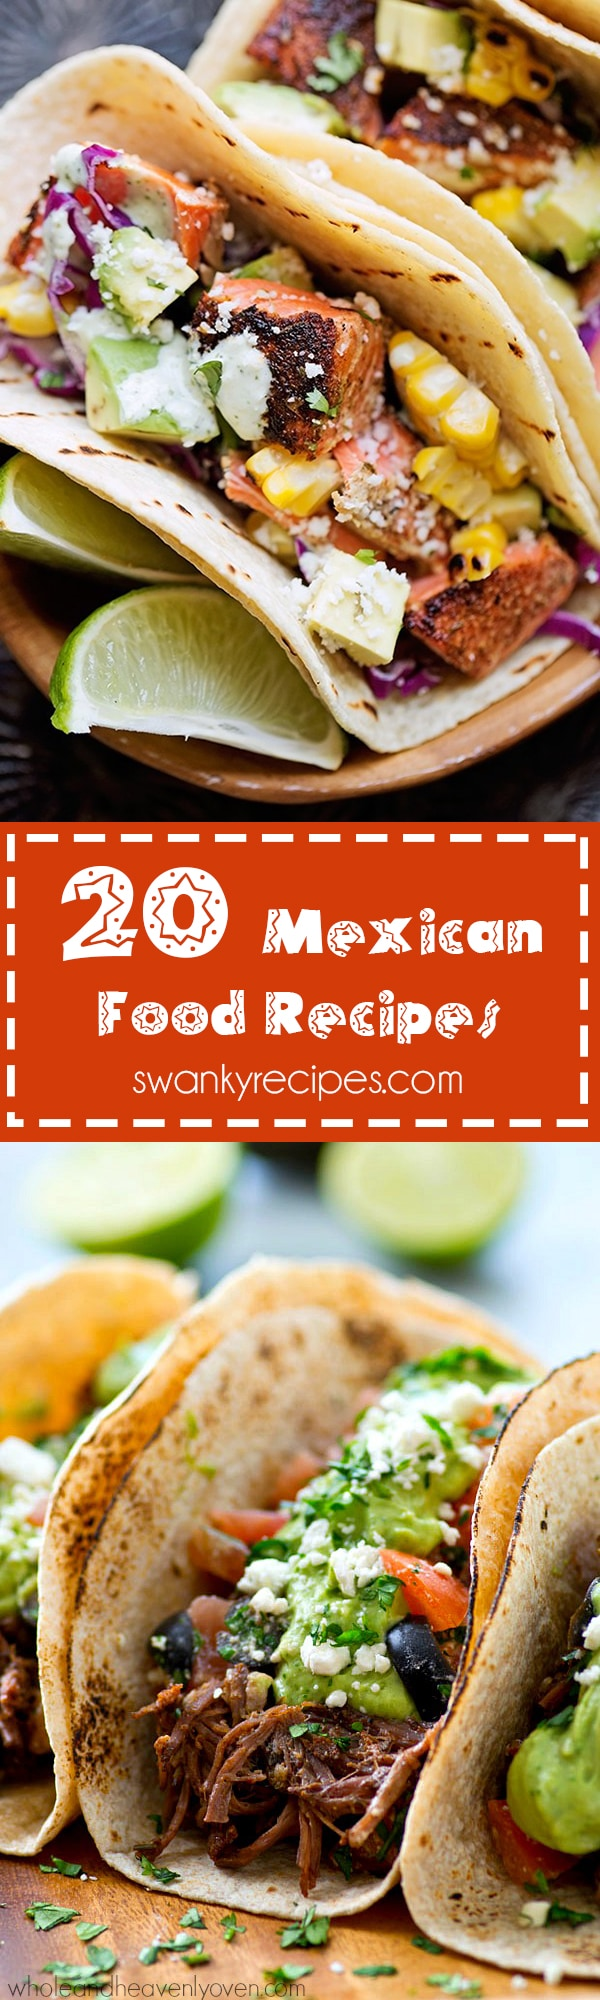 -20 Mexican Food Recipes